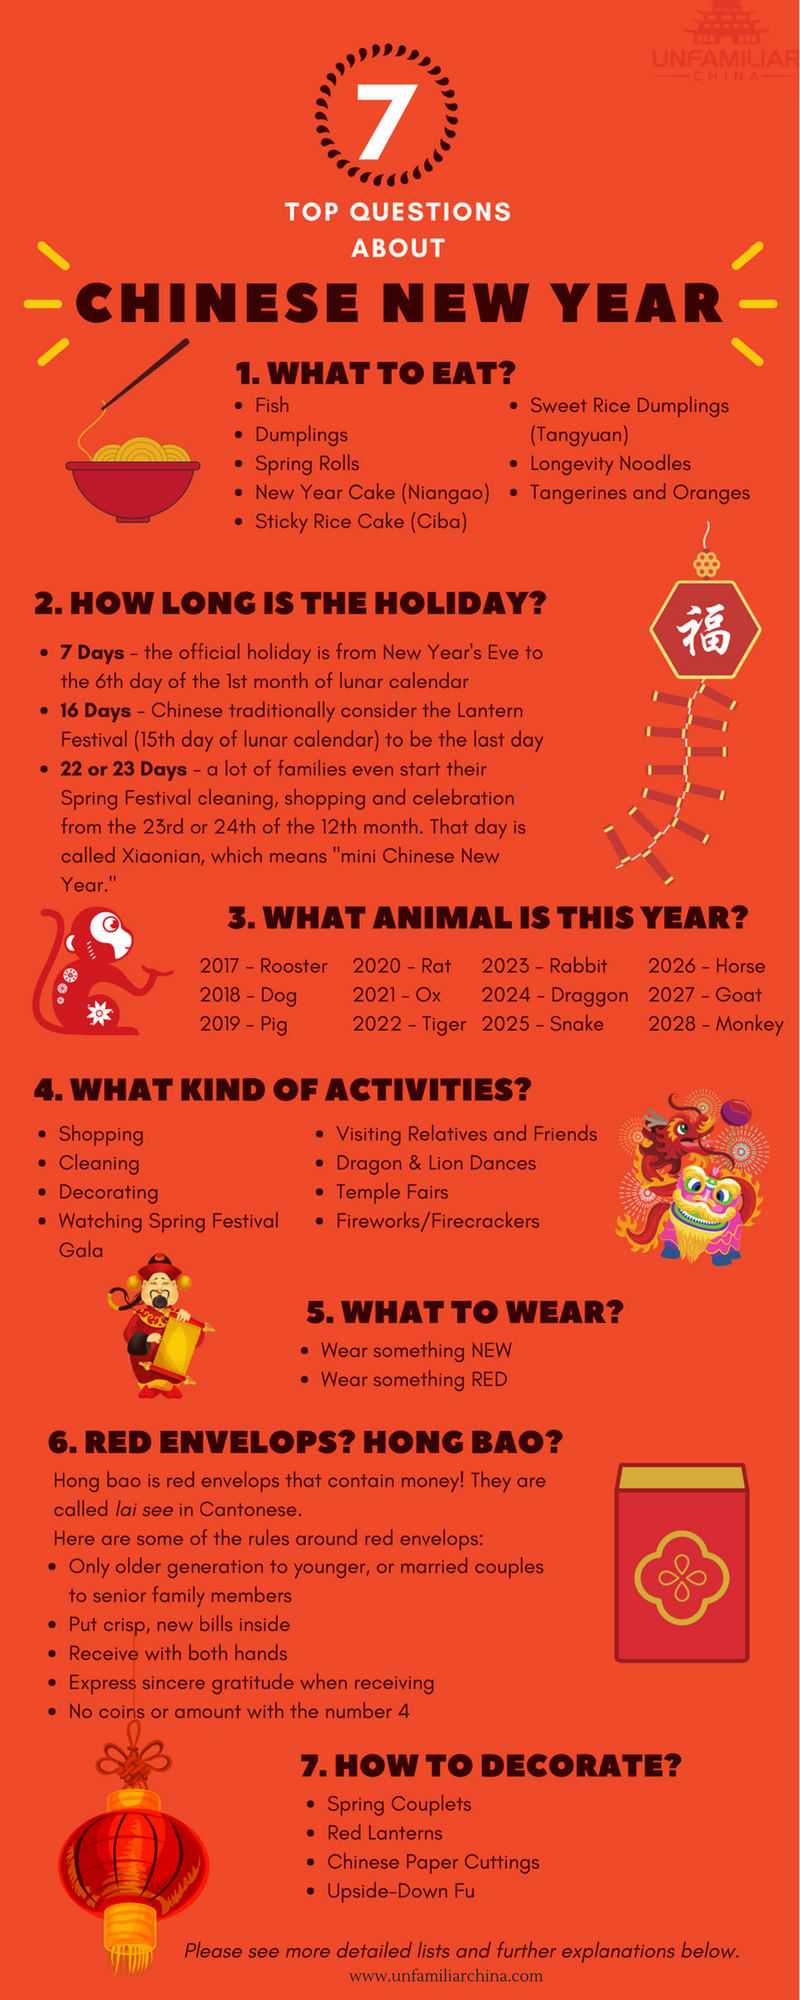 Infographic] Top 7 Questions about Chinese New Year | Unfamiliar China